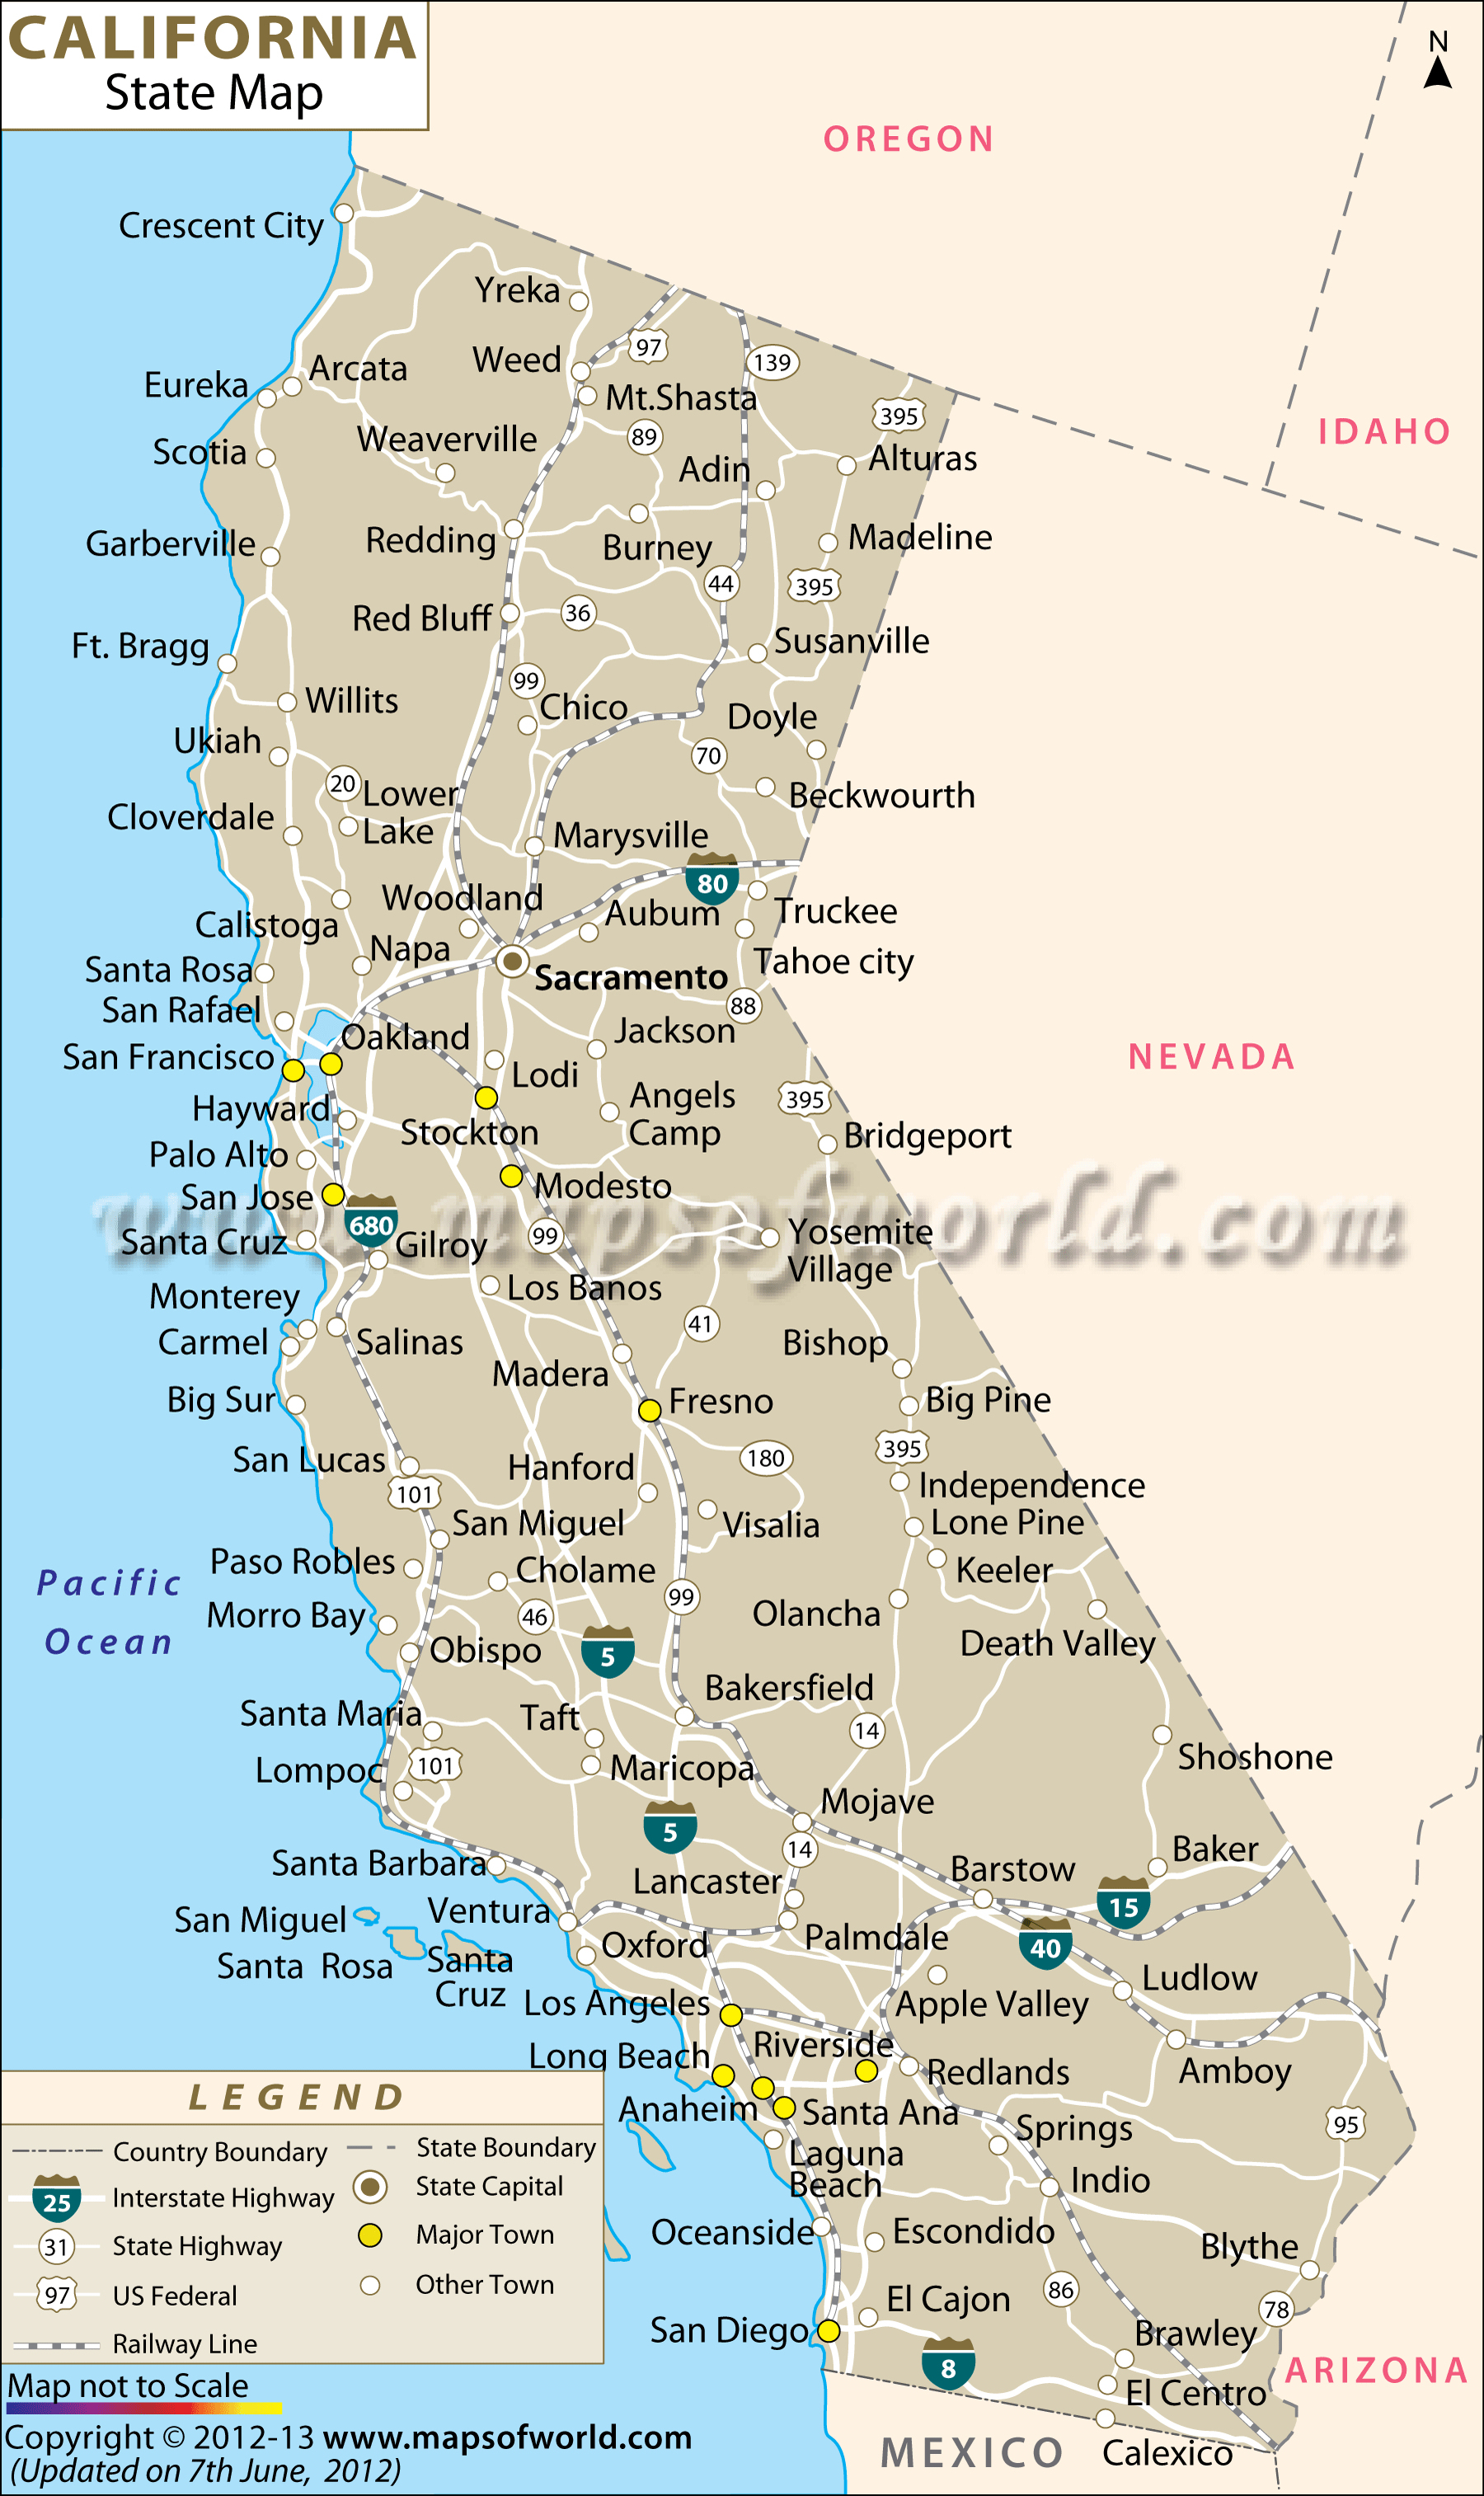 Map O California State Map California Map Cities Google Maps - Where Can I Buy A Map Of California